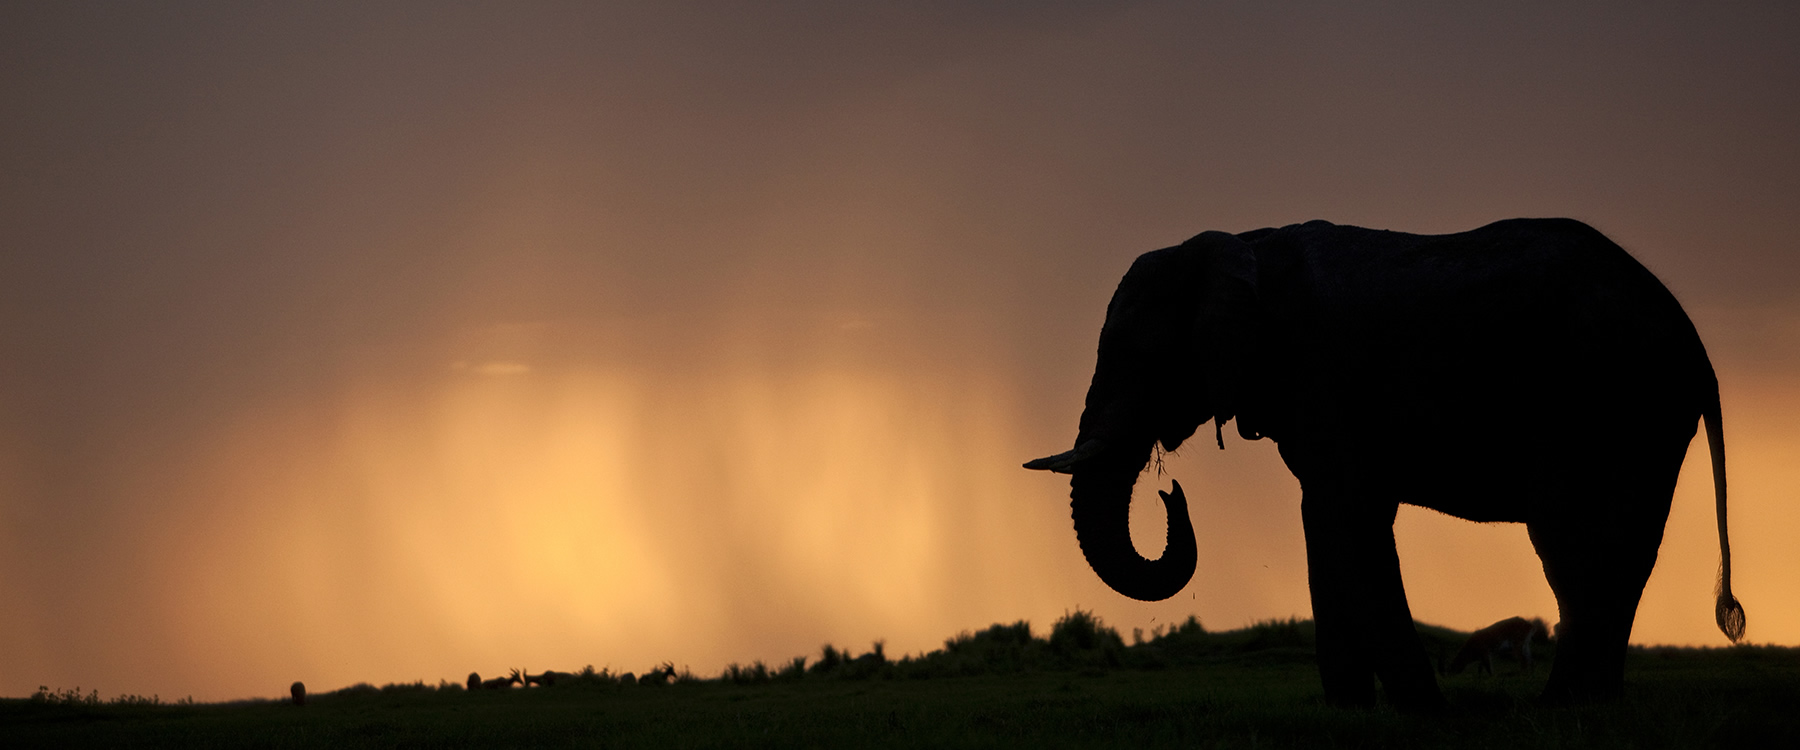 Silhouette of elephant against a sunset sky